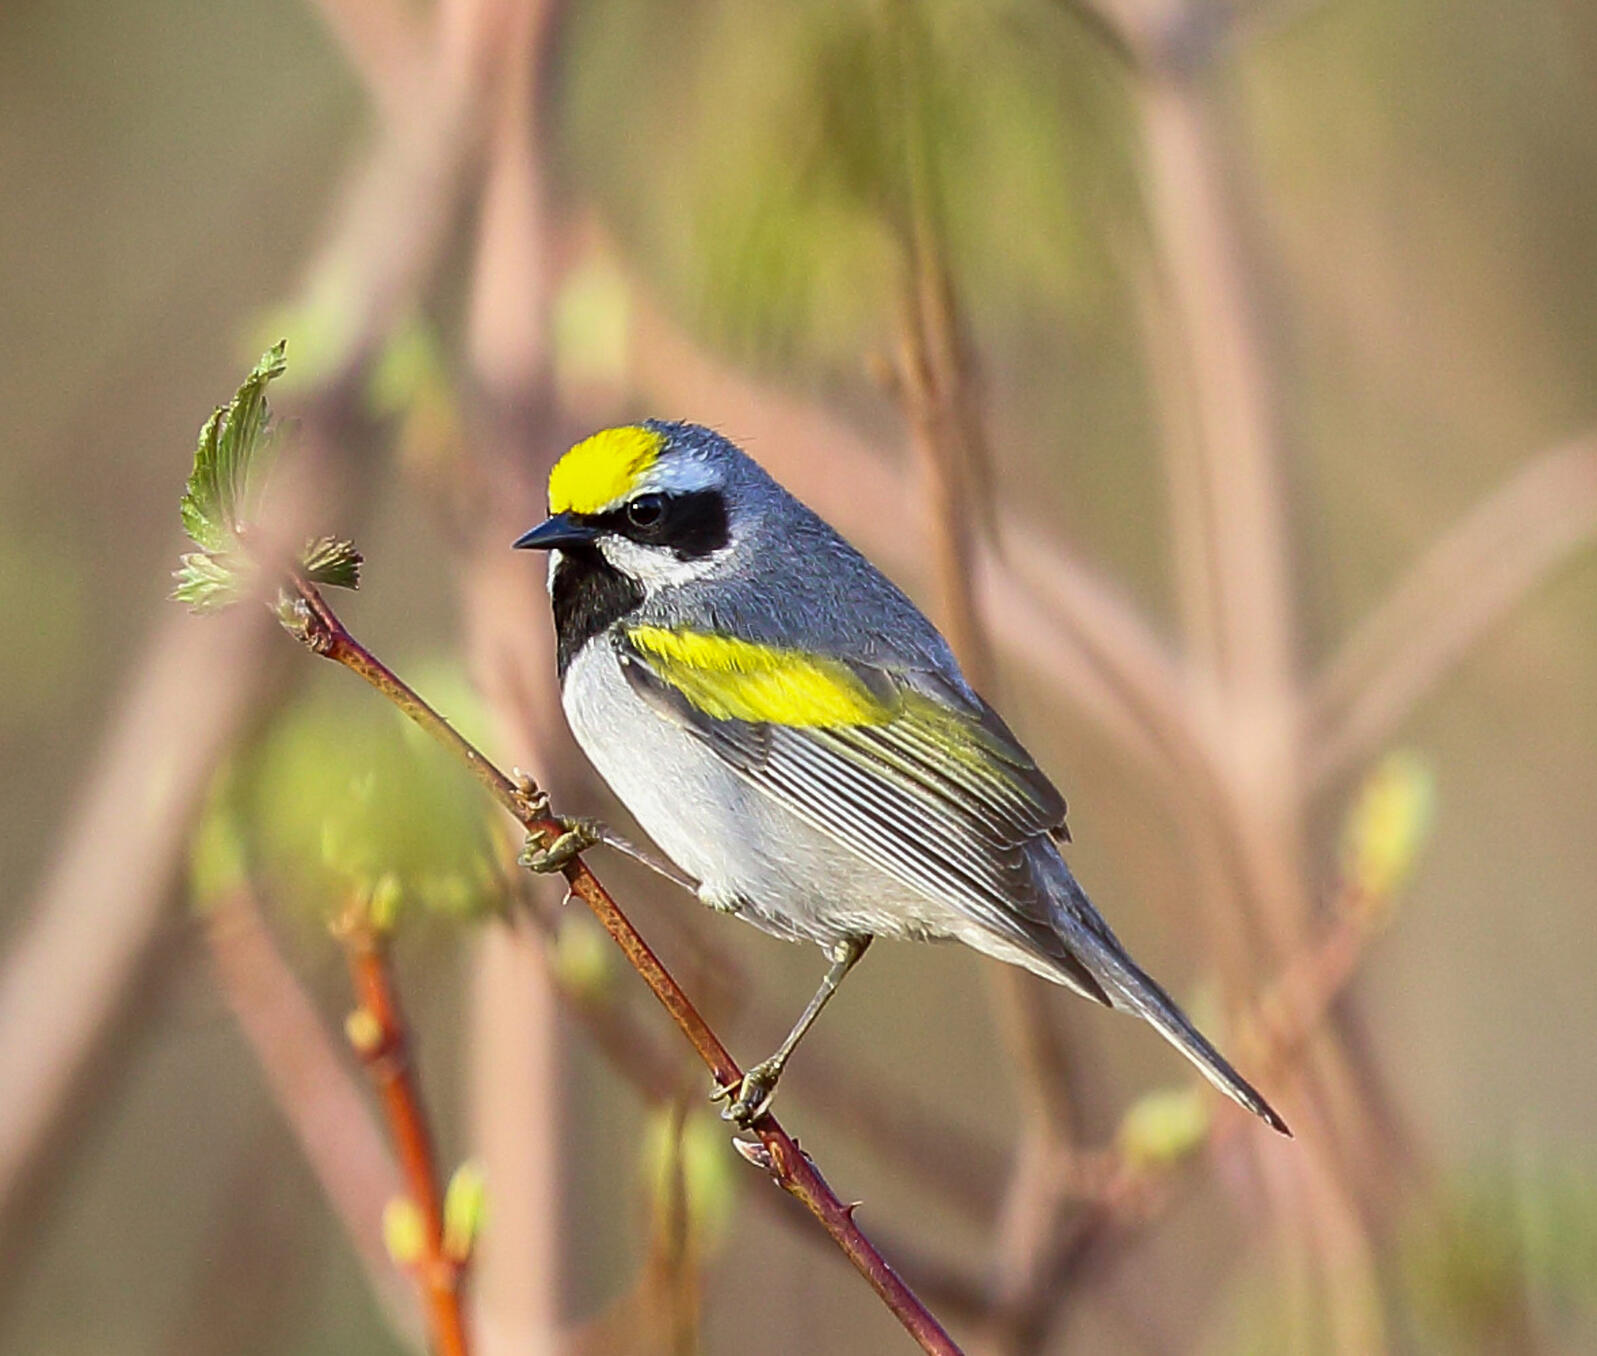 Golden-winged Warbler. Photo: Charlie Trapani/Audubon Photography Awards